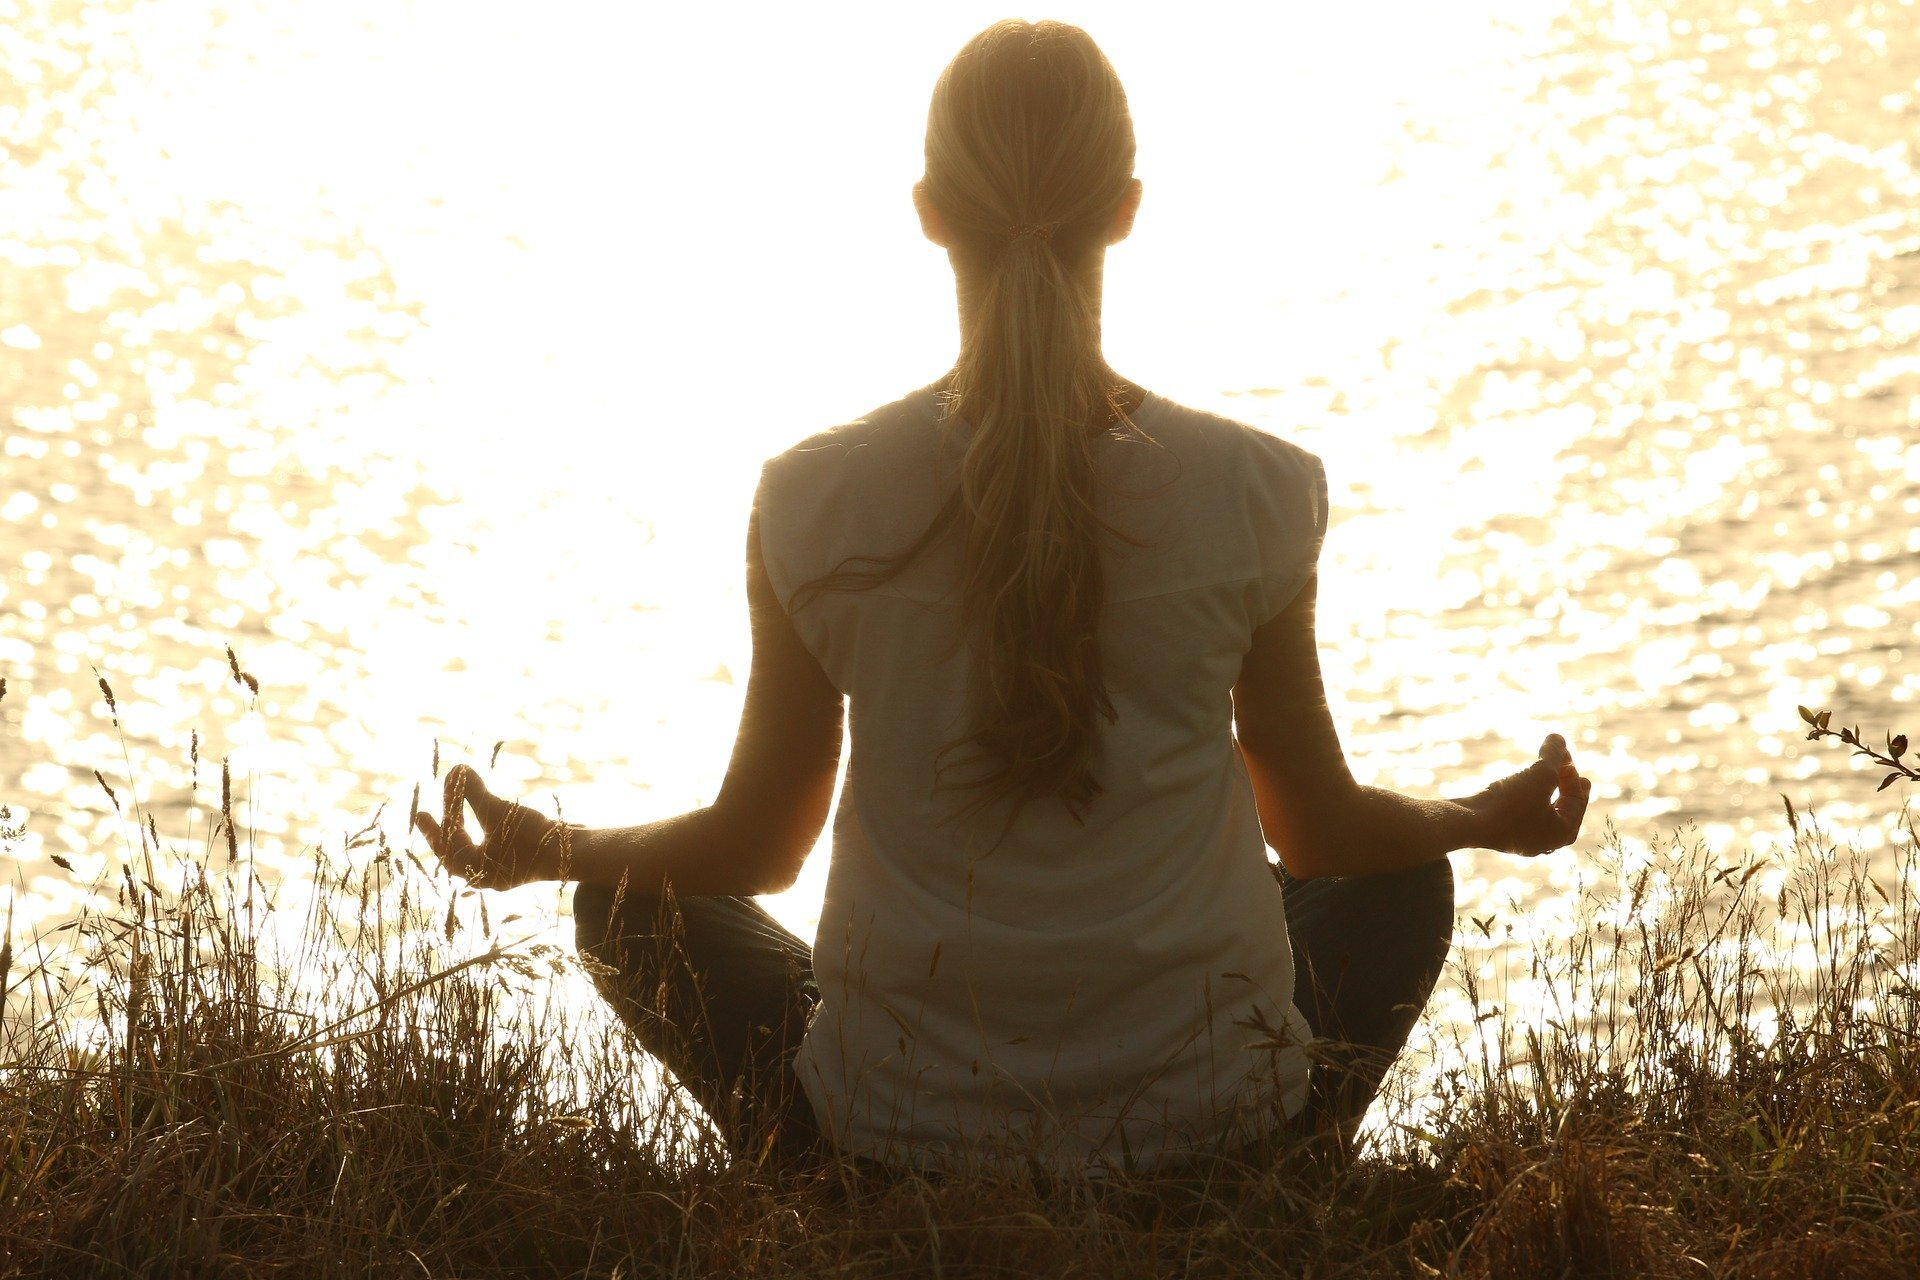 Making mindfulness meditation more helpful starts with understanding how it can be harmful